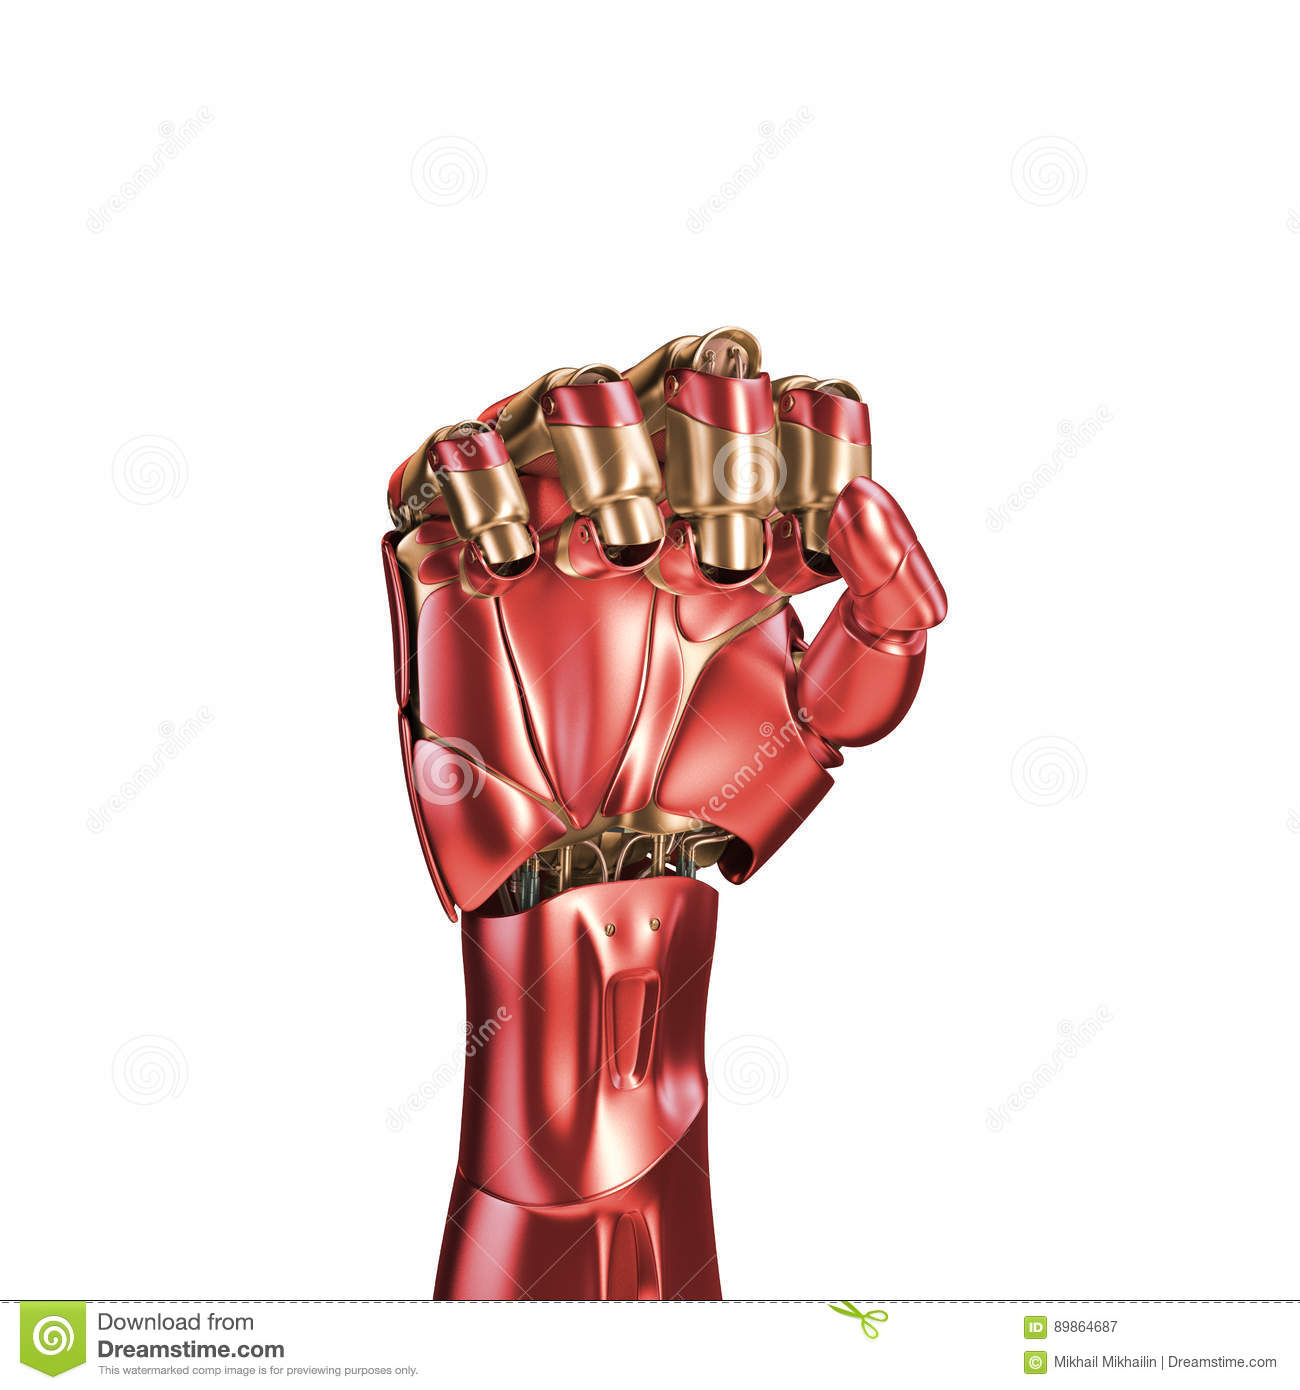 The Arm Of An Iron Man Red And Gold Coloring 3d Rendering Template Isolated On White Background